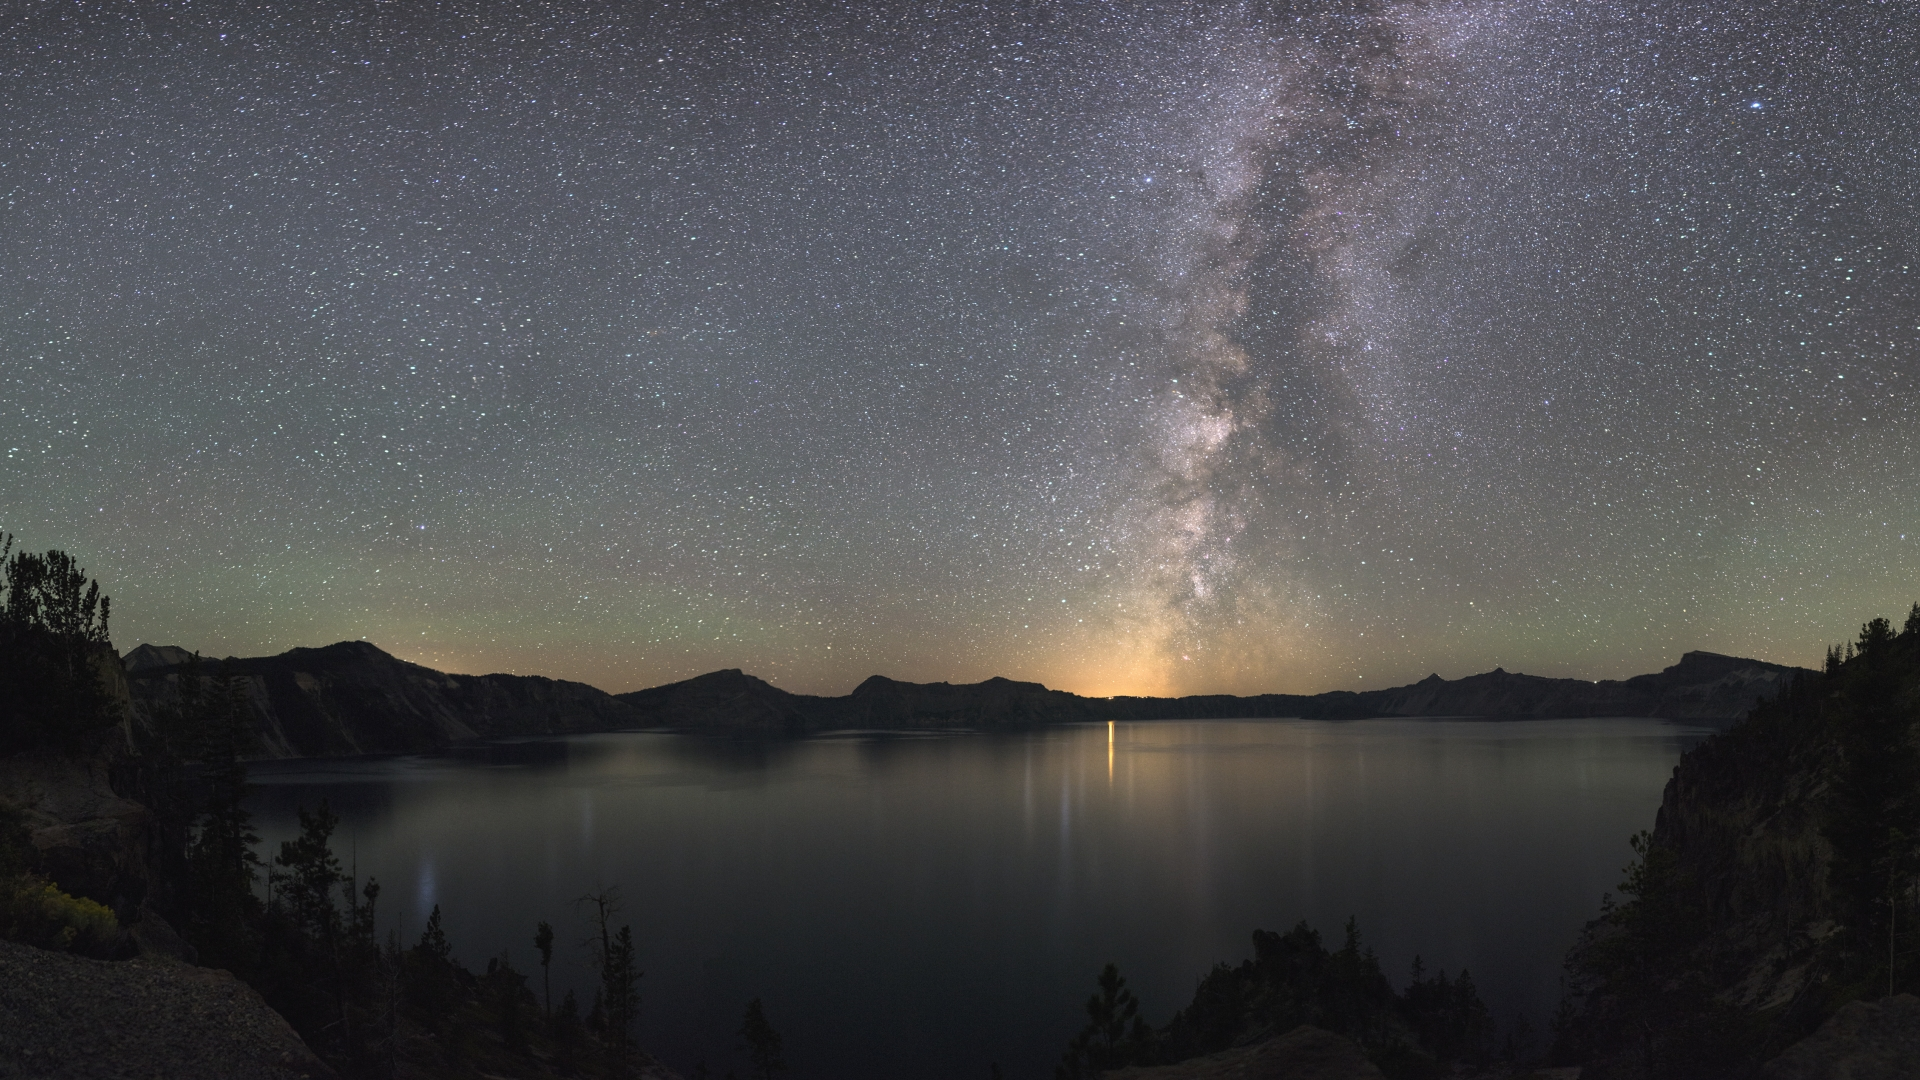 Milky Way at night over Crater Lake National Park